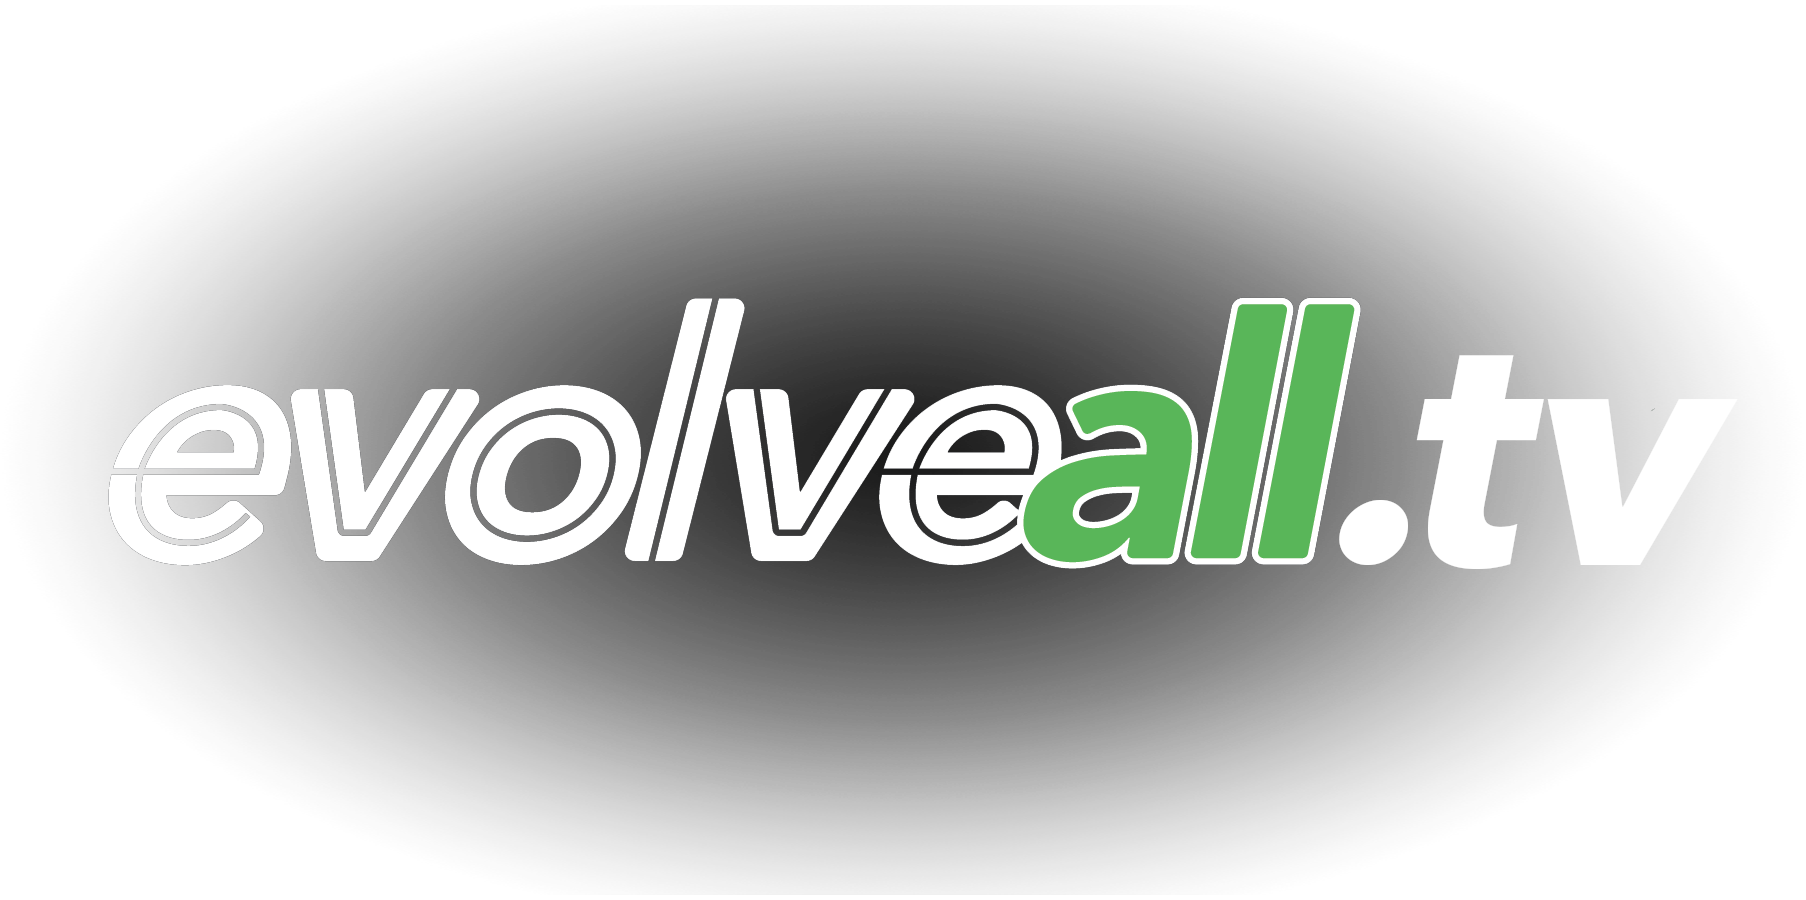 evolveall tv text logo with gradient - EvolveAll, Training and Growth Center